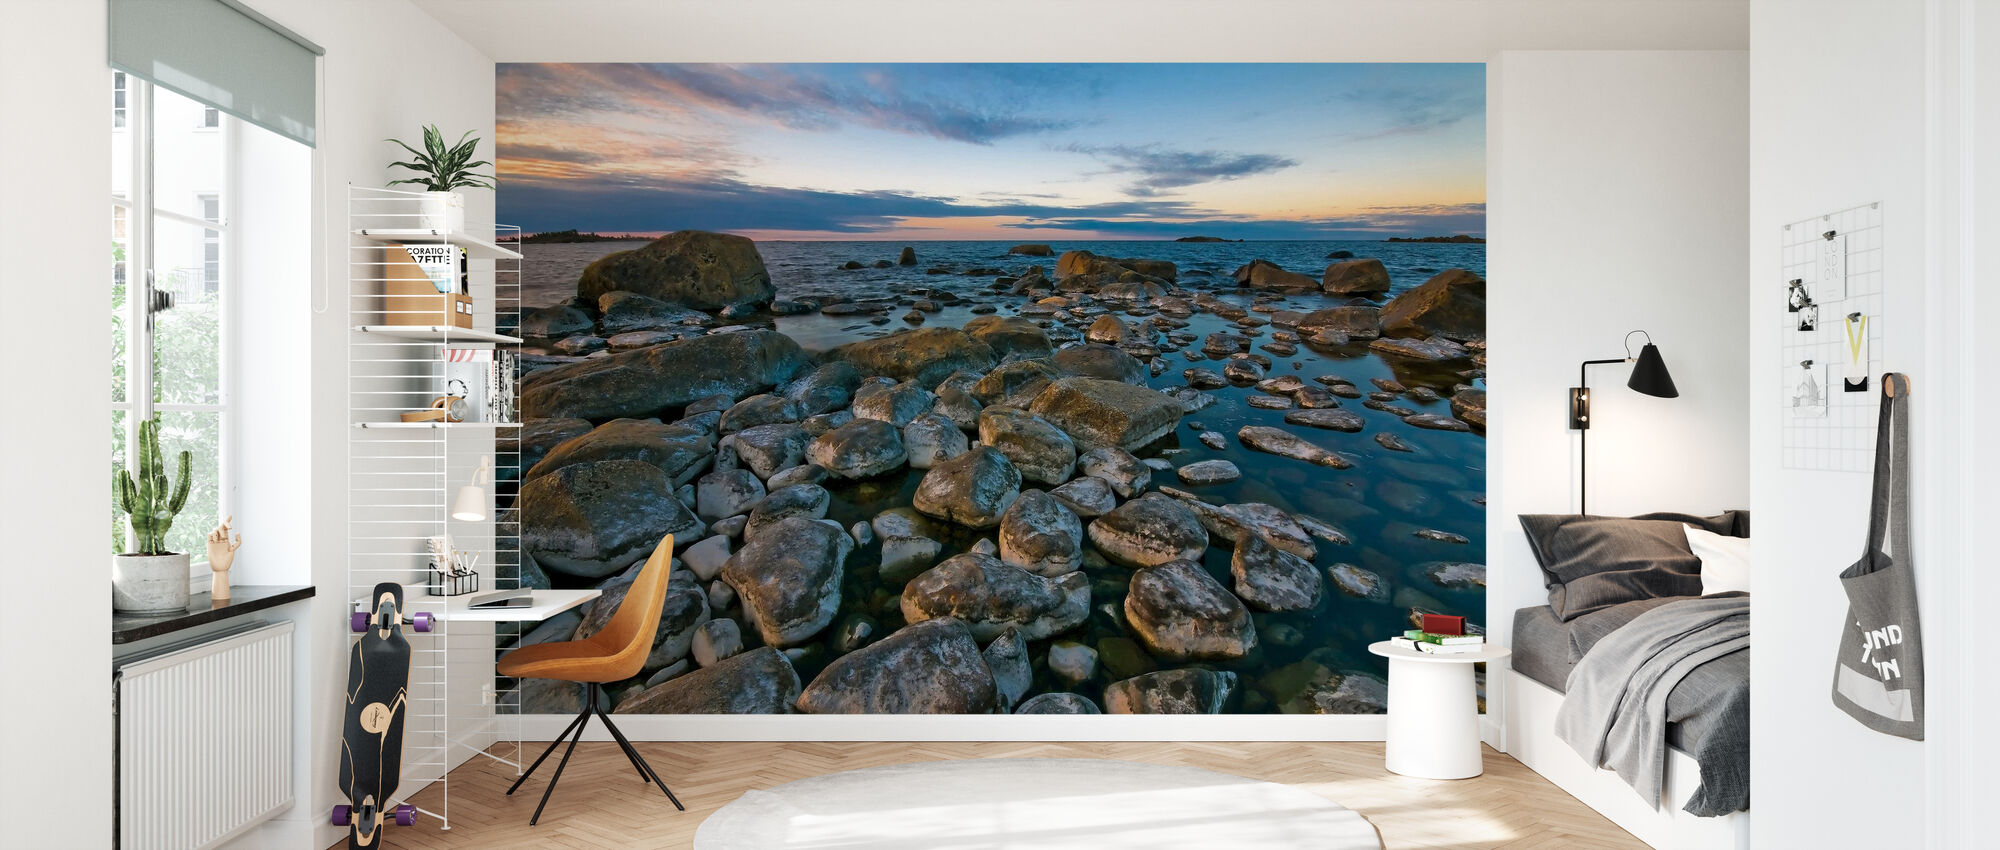 Swedish Shoreline - Wallpaper - Kids Room